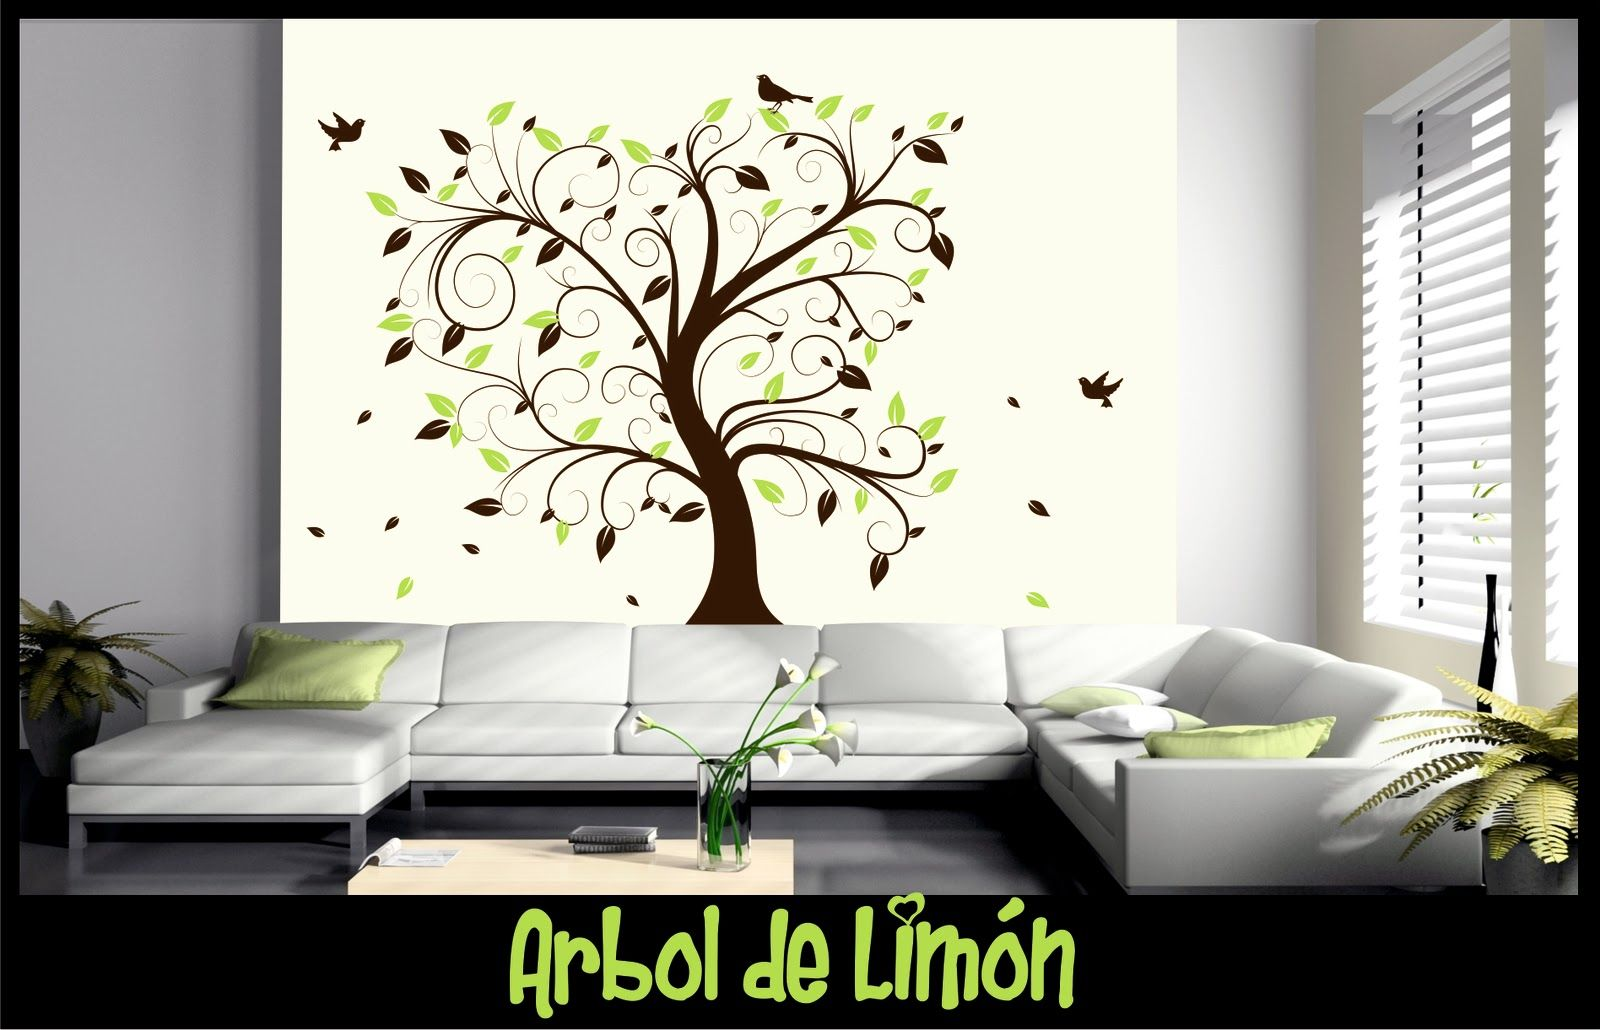 Vinilo decorativo arbol de limon home decor pinterest arbol de limon limon y vinilos - Vinilo decorativo arbol ...